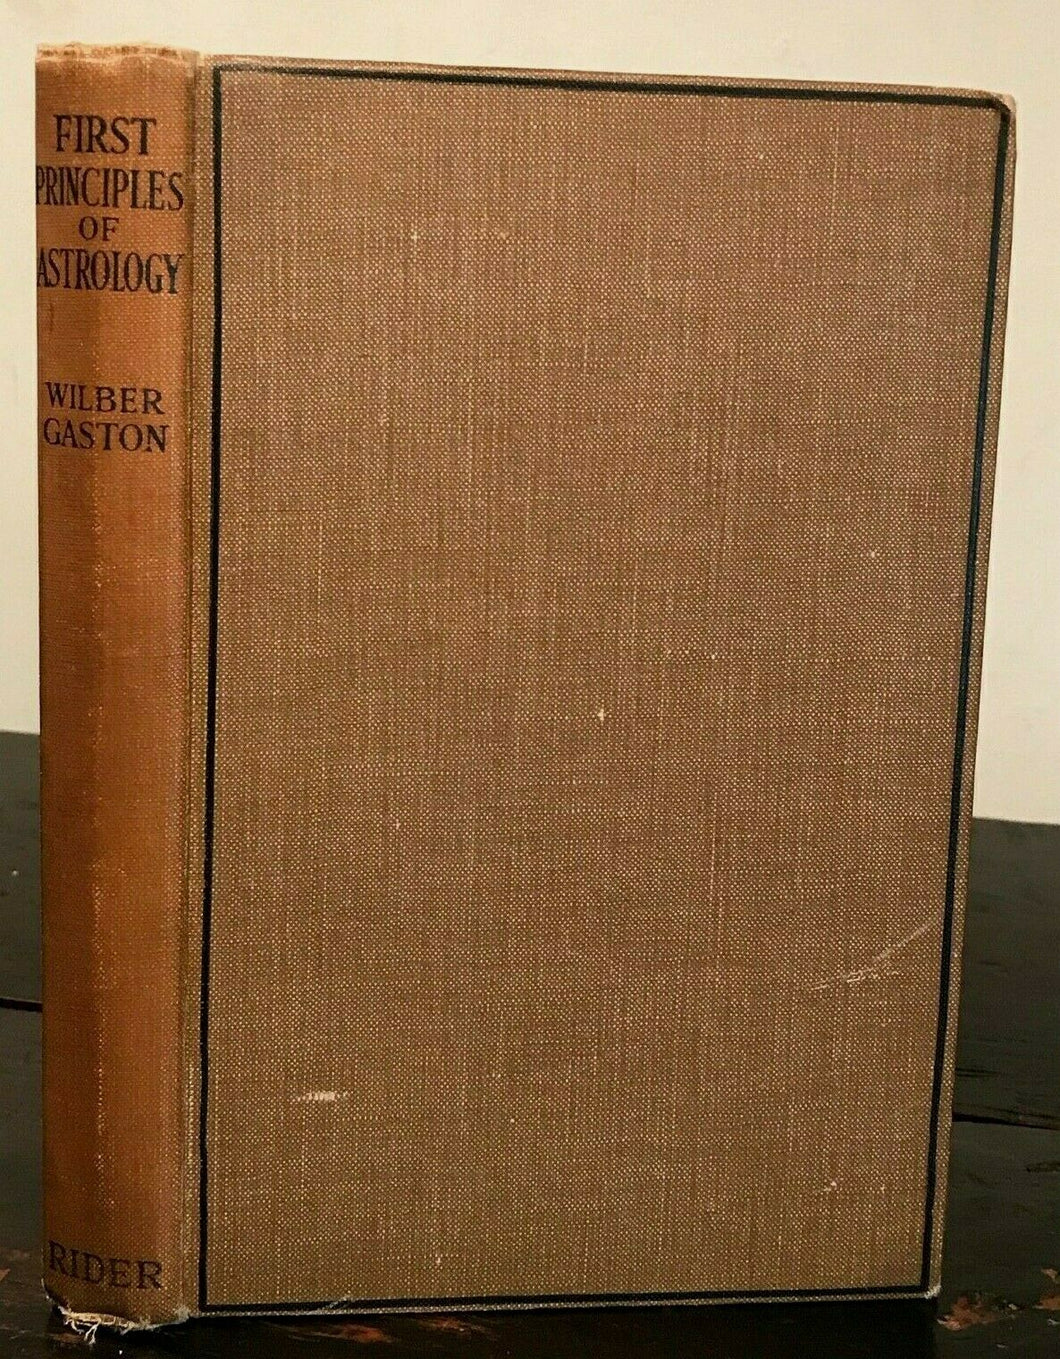 FIRST PRINCIPLES OF ASTROLOGY - Gaston, 1st Ed 1927, ZODIAC DIVINATION ASTROLOGY